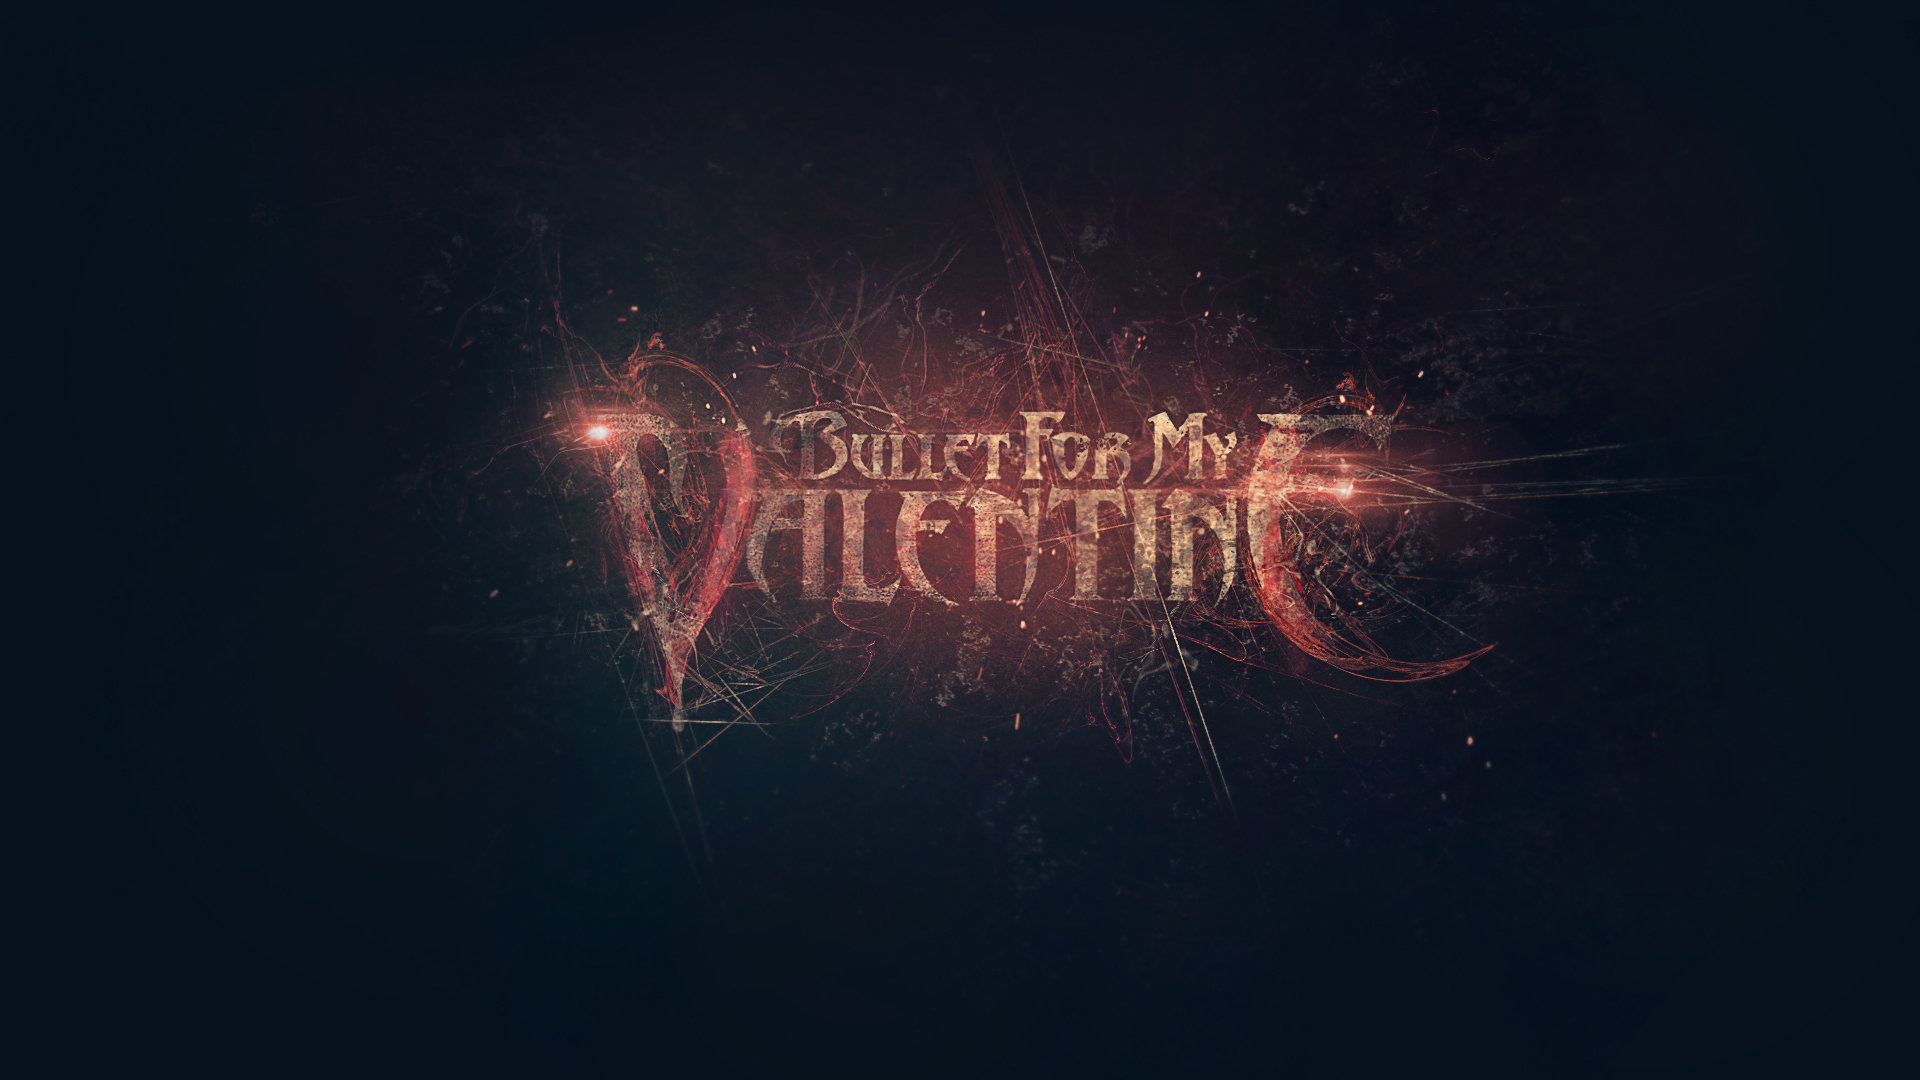 Awesome Bullet For My Valentine Free Wallpaper Id 319693 For 1080p Pc